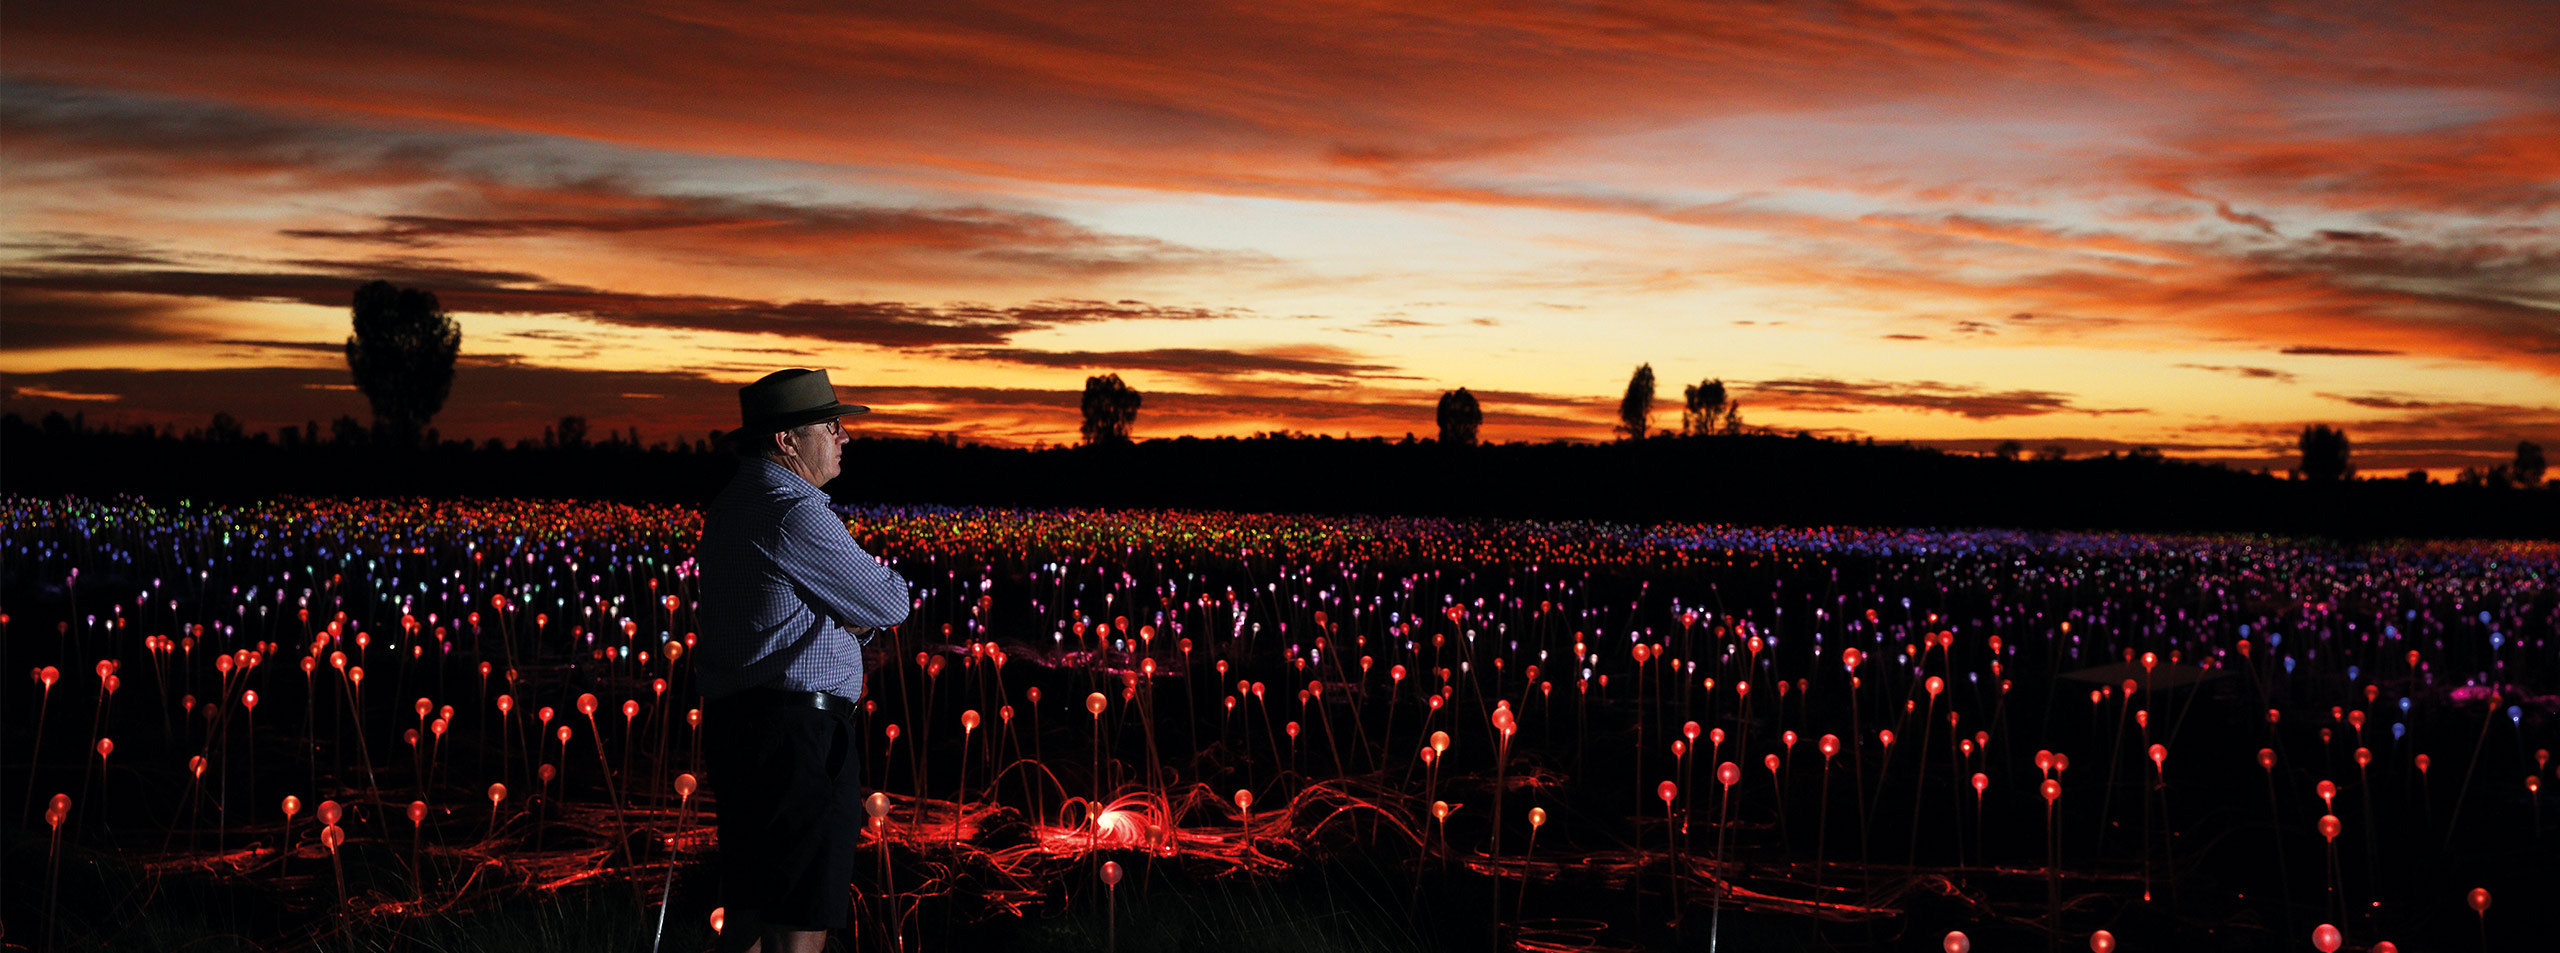 Bruce Munro, Field of Light